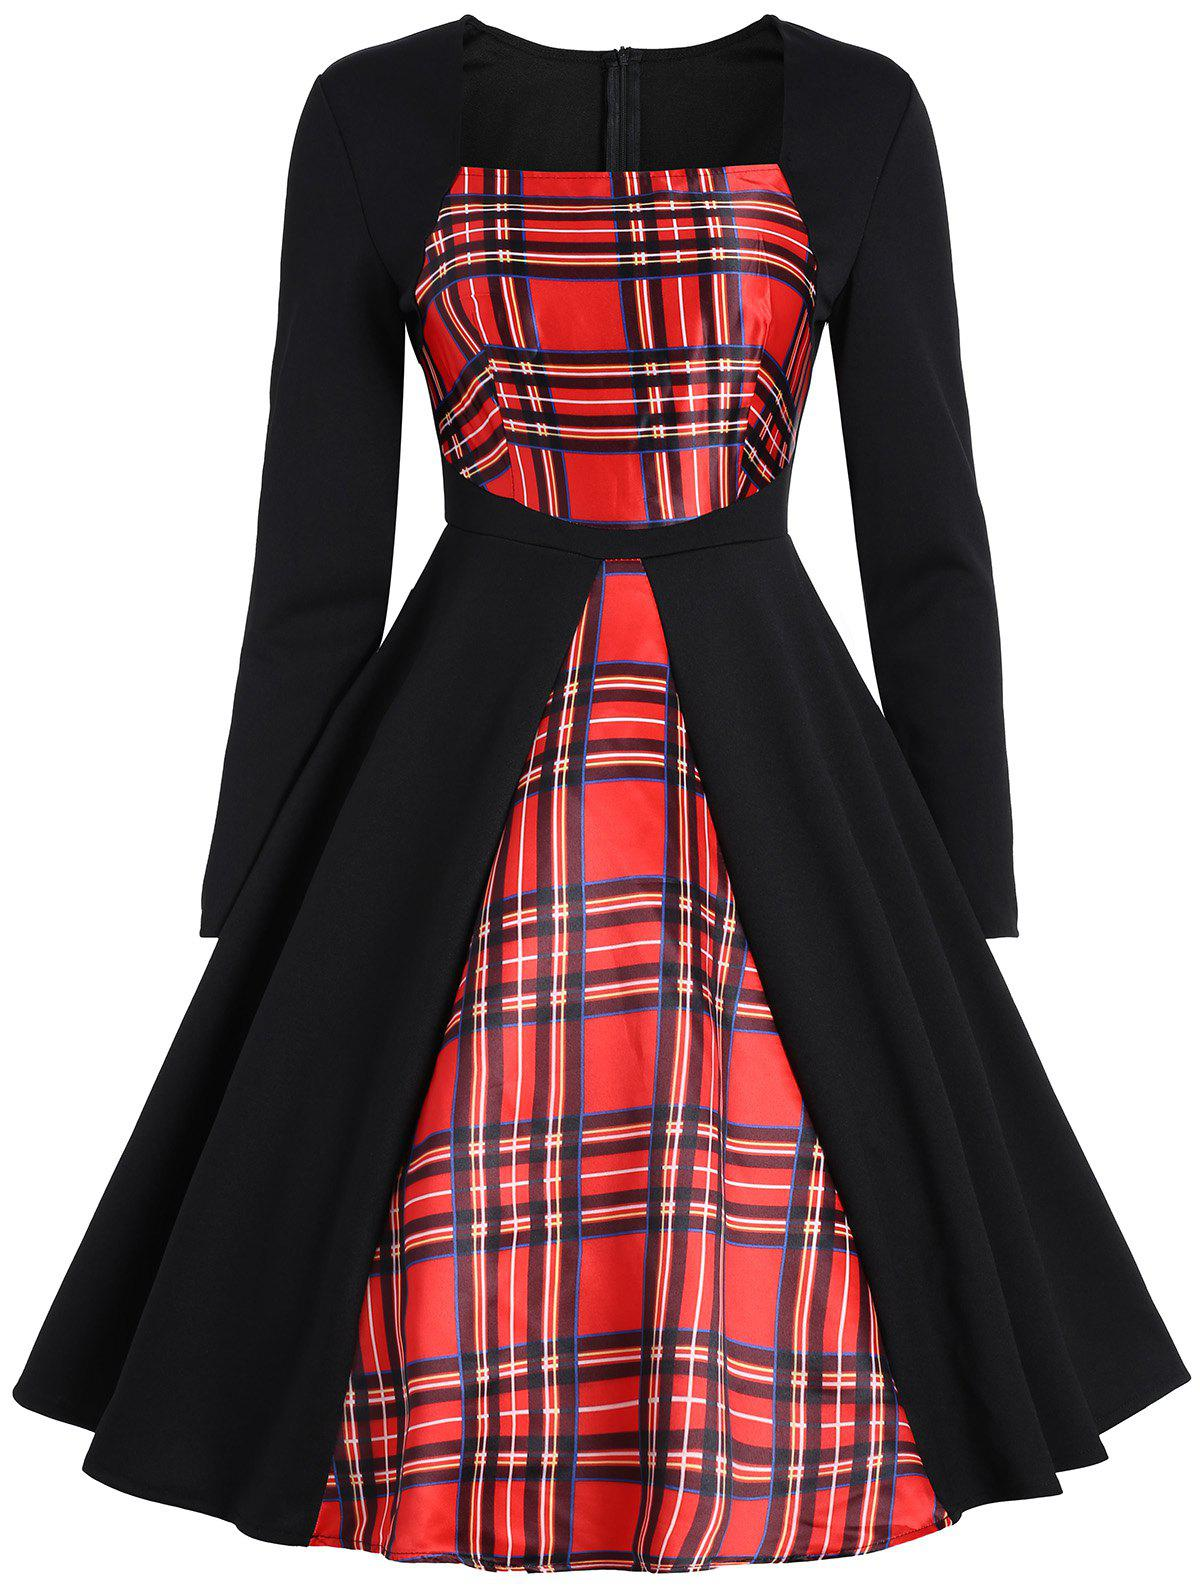 Vintage Long Sleeve Plaid Panel DressWOMEN<br><br>Size: M; Color: RED; Style: Vintage; Material: Polyester; Silhouette: A-Line; Dresses Length: Knee-Length; Neckline: Square Collar; Sleeve Length: Long Sleeves; Pattern Type: Plaid; With Belt: No; Season: Fall,Spring,Winter; Weight: 0.4000kg; Package Contents: 1 x Dress;